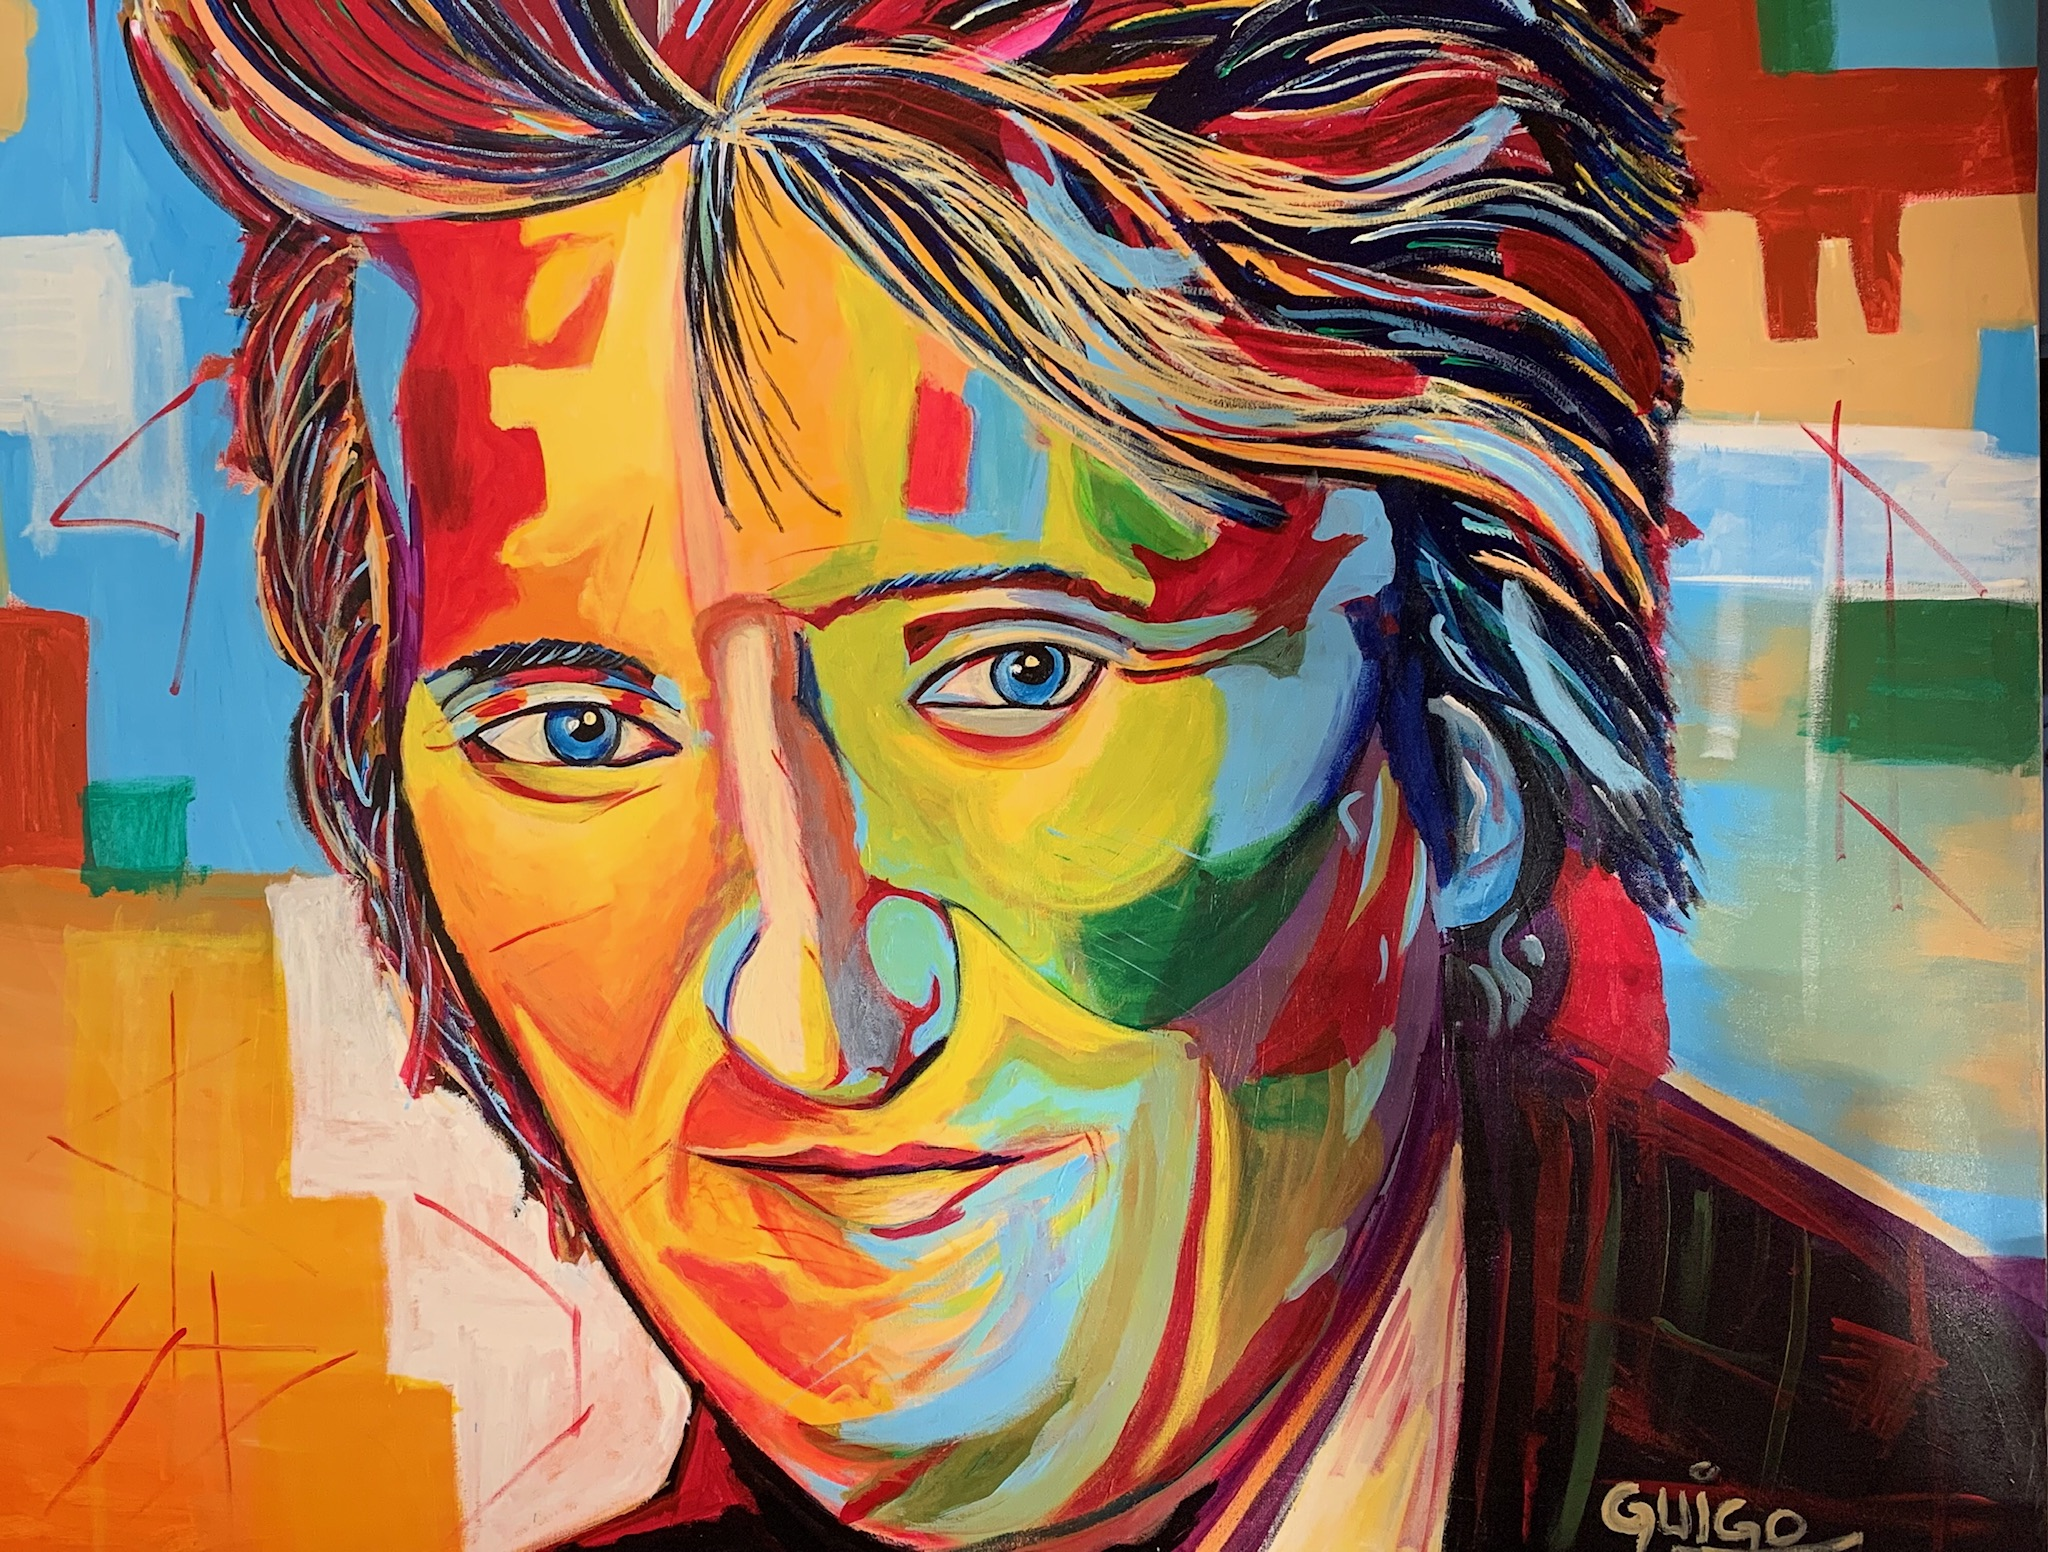 Rod Stewart  artwork by Guigo - art listed for sale on Artplode